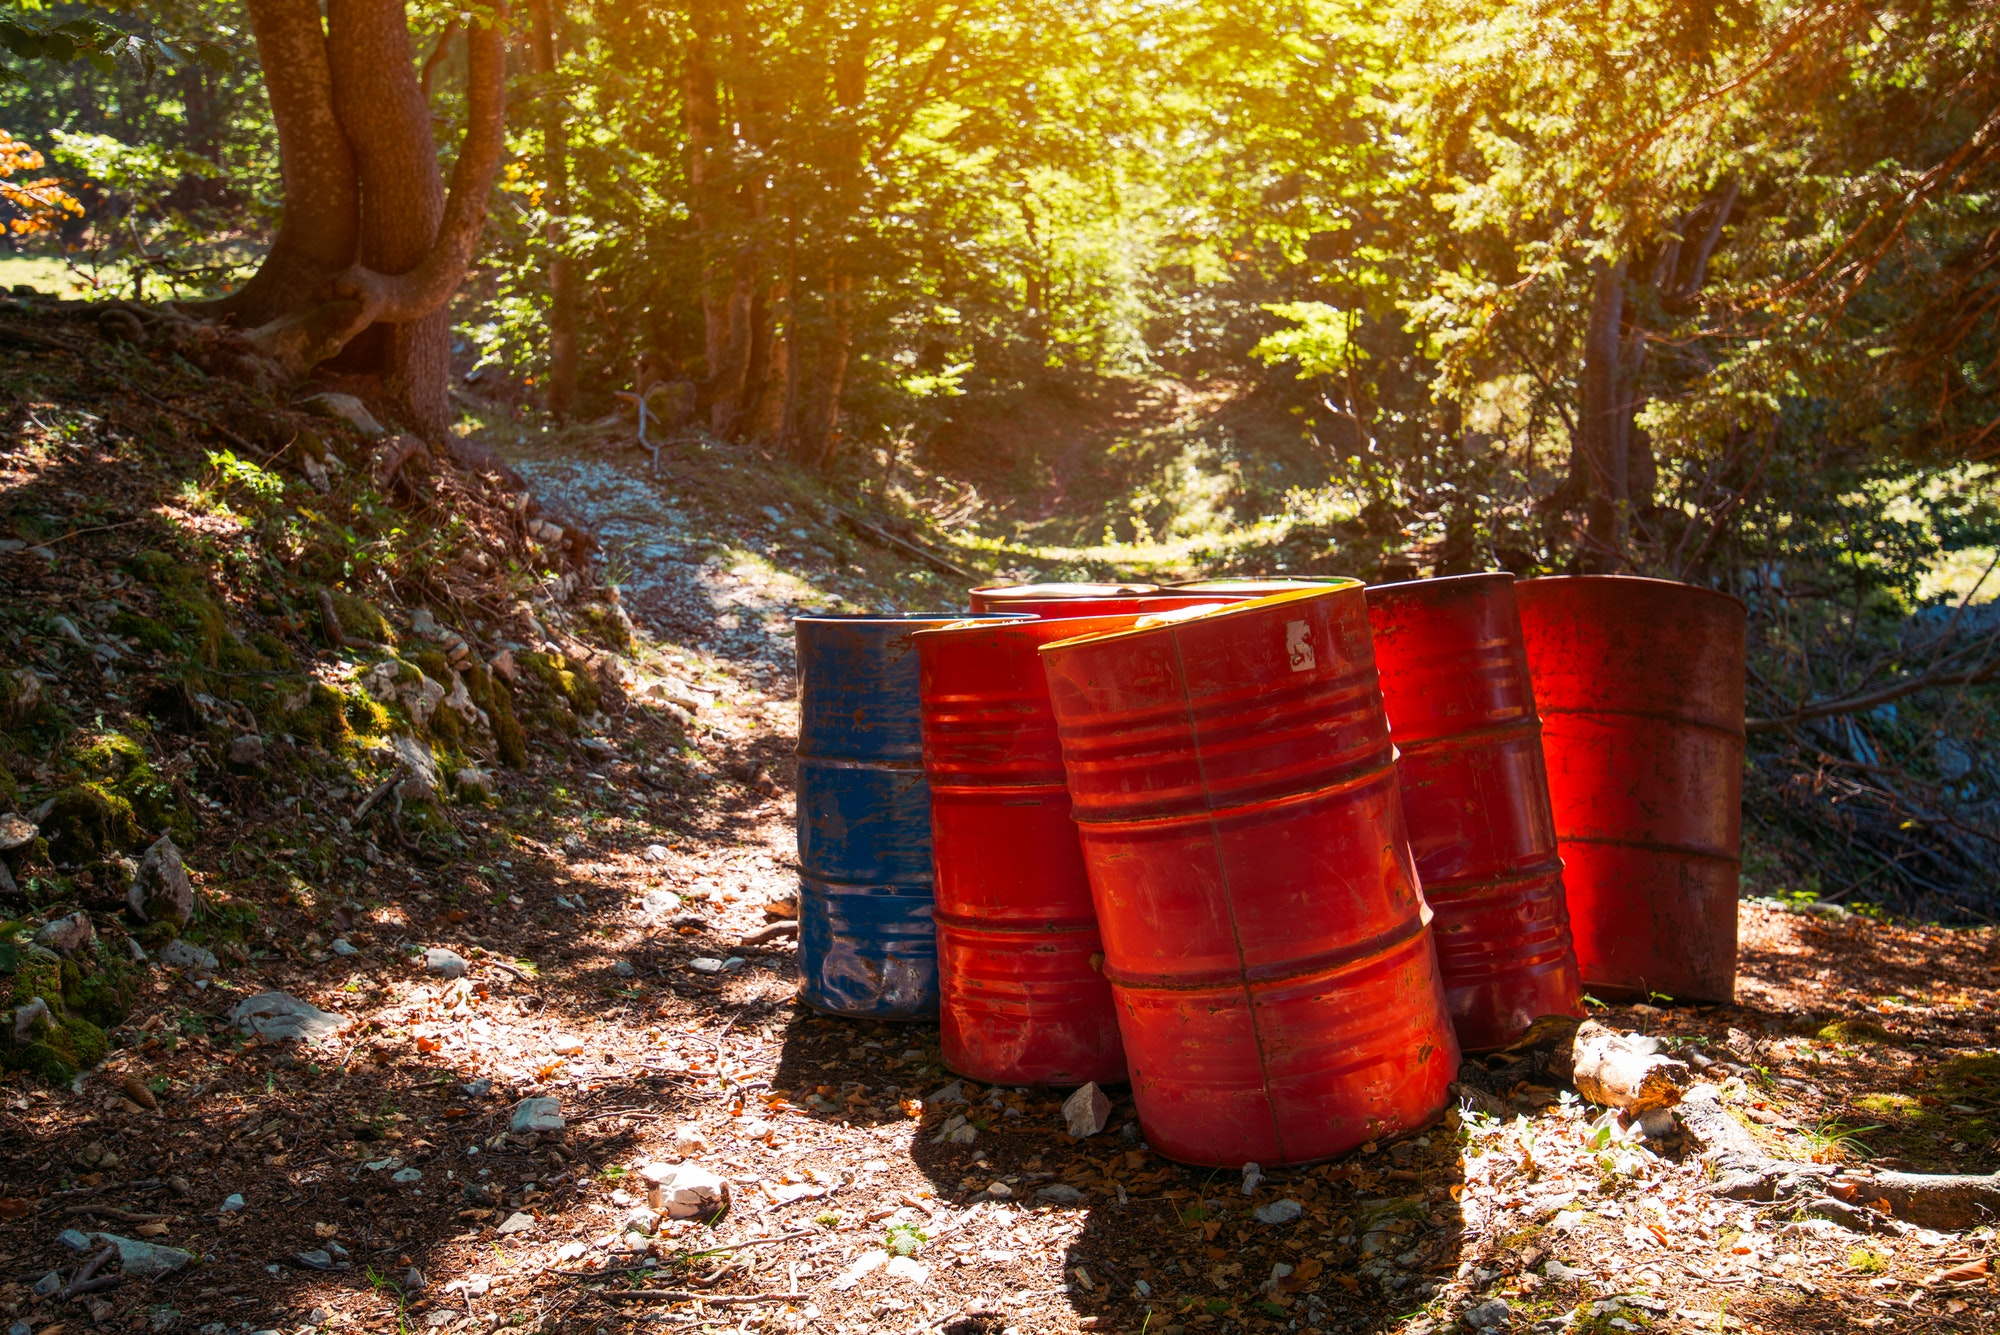 Toxic waste barrels in the forest